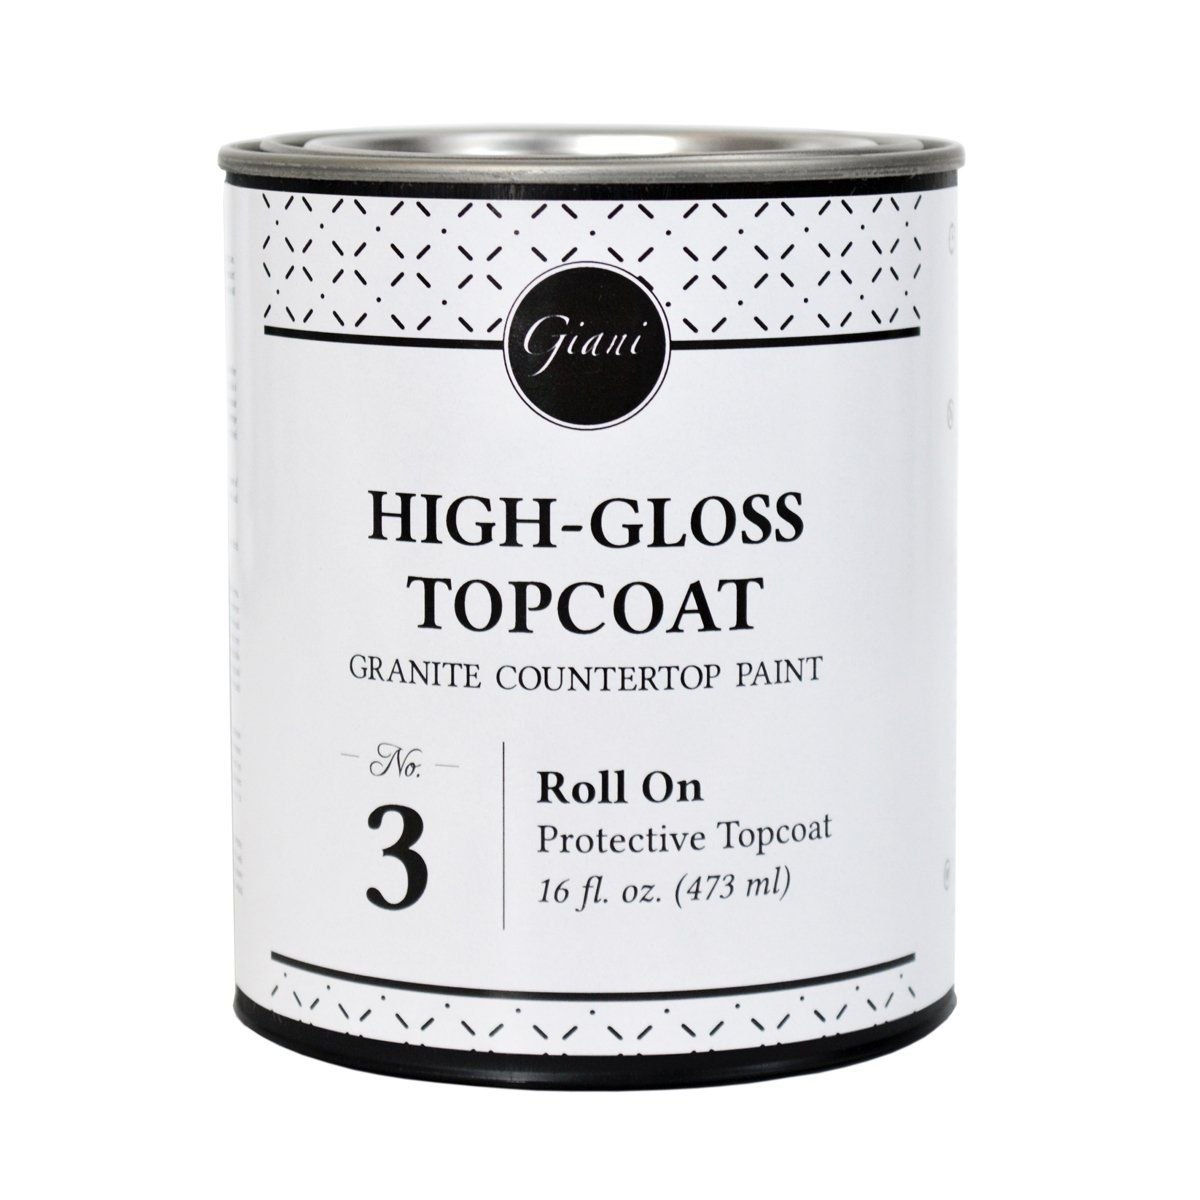 High Gloss Topcoat For Giani Countertop Paint Kits Step 3 Giani Countertop Paint Painting Countertops Countertop Paint Kit